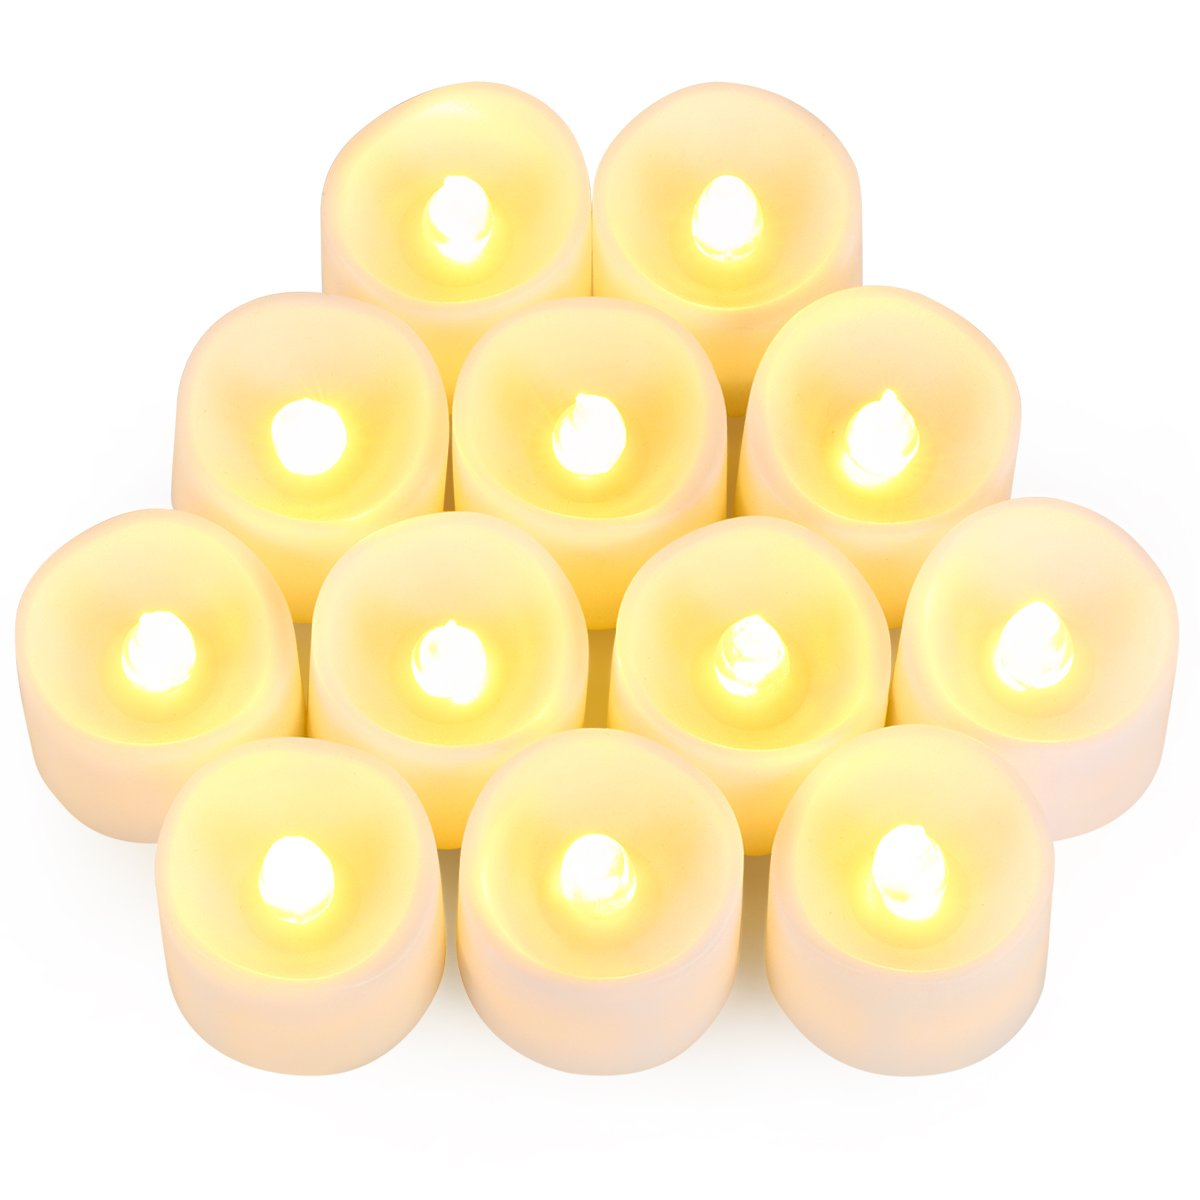 Criacr Flameless Candles, LED Battery Candles, Flickering Candle Tea Lights, Electric Candles for Christmas, Party, Birthday Decoration, Wedding (12 Packs, Batteries Included)